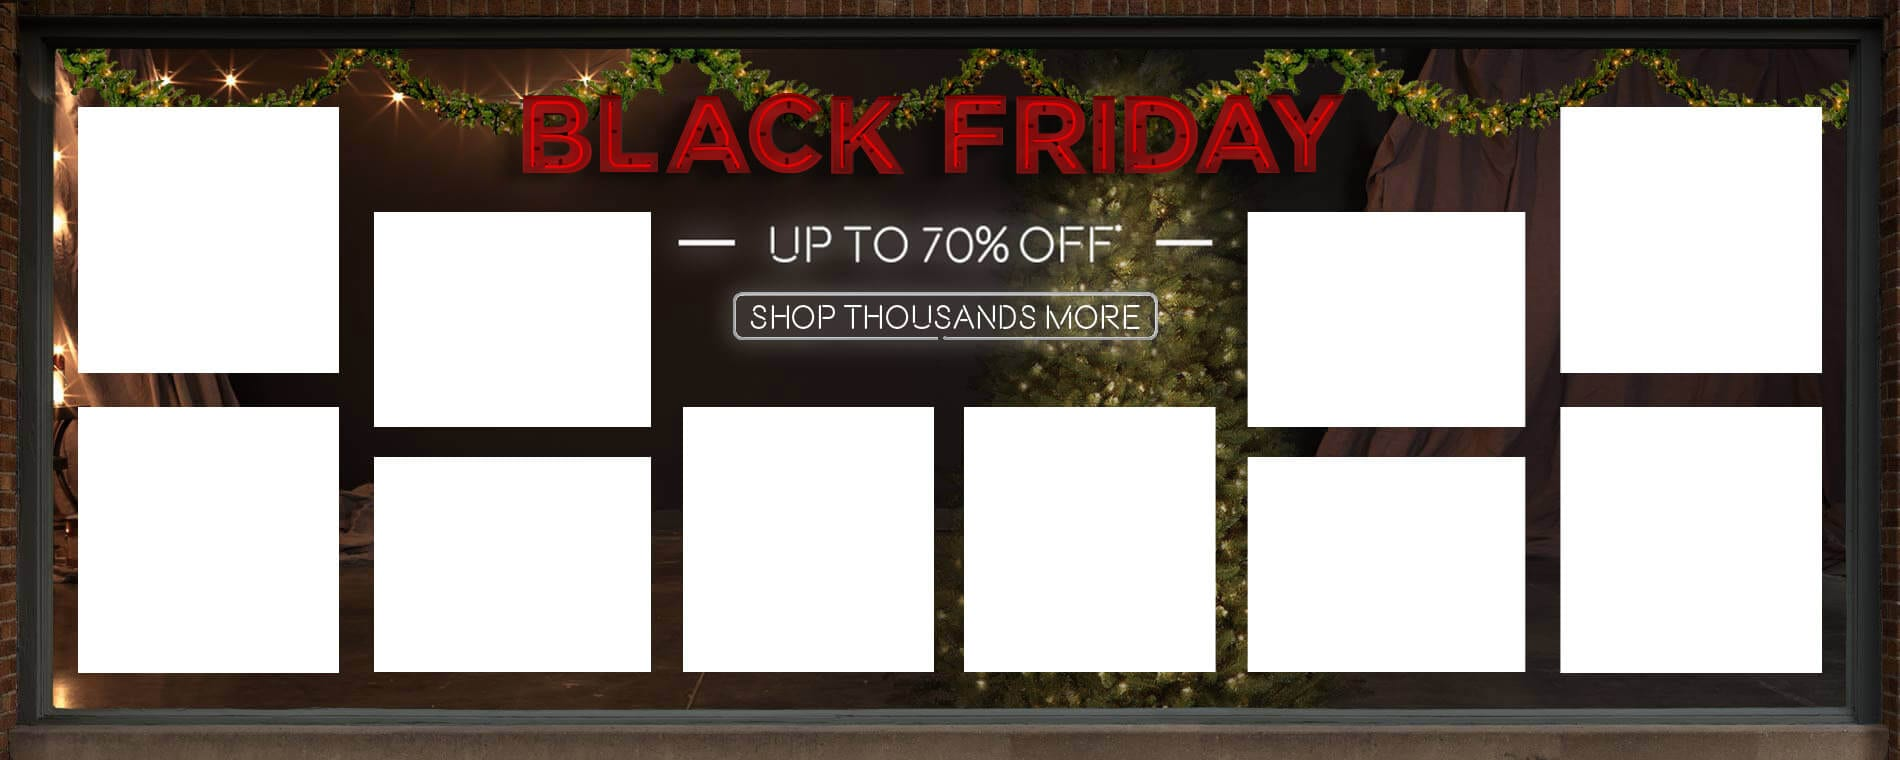 Black Friday. Up to 70% Off. Shop Thousands More.